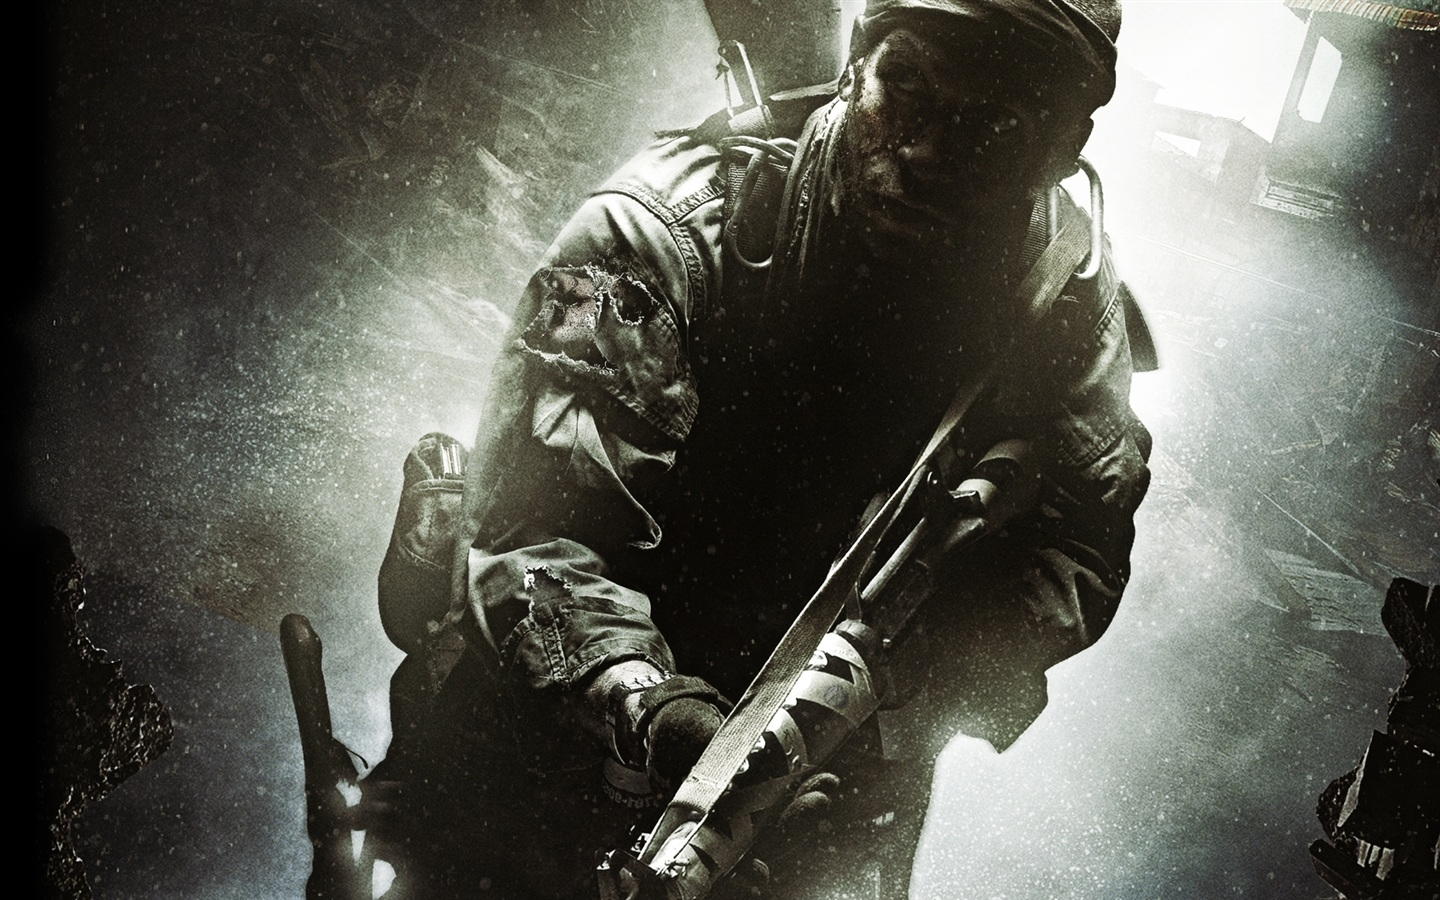 Wallpaper Call Of Duty Black Ops 2 Game 2012 1920x1080 Full Hd 2k